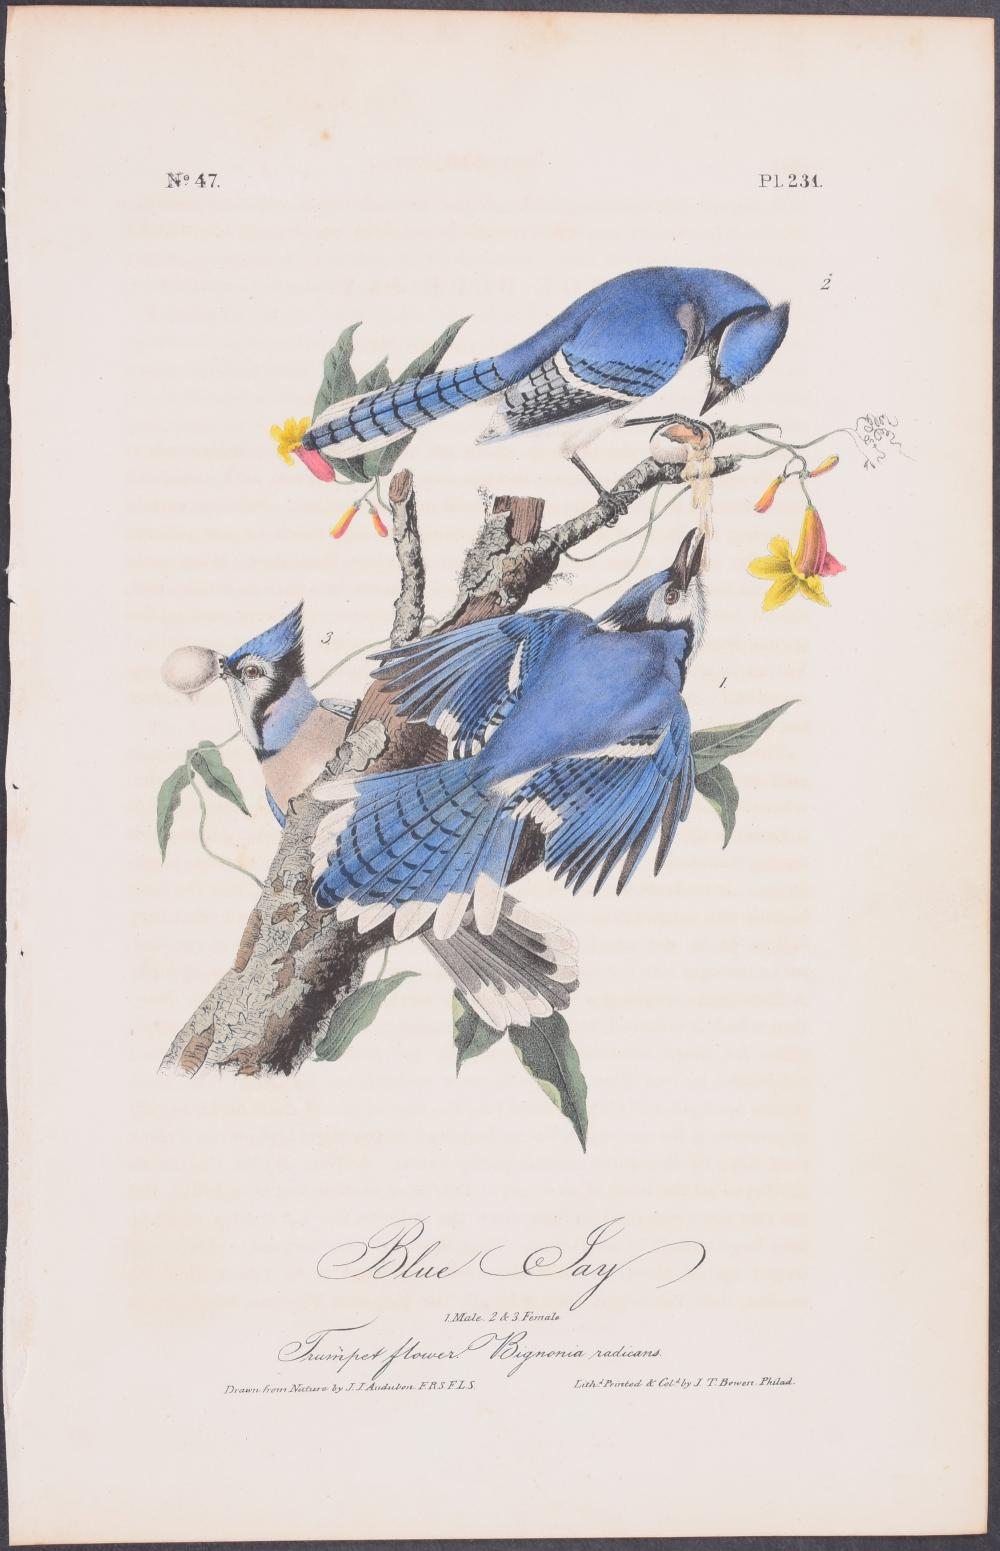 Lot 11113: Audubon - Blue Jay. 231